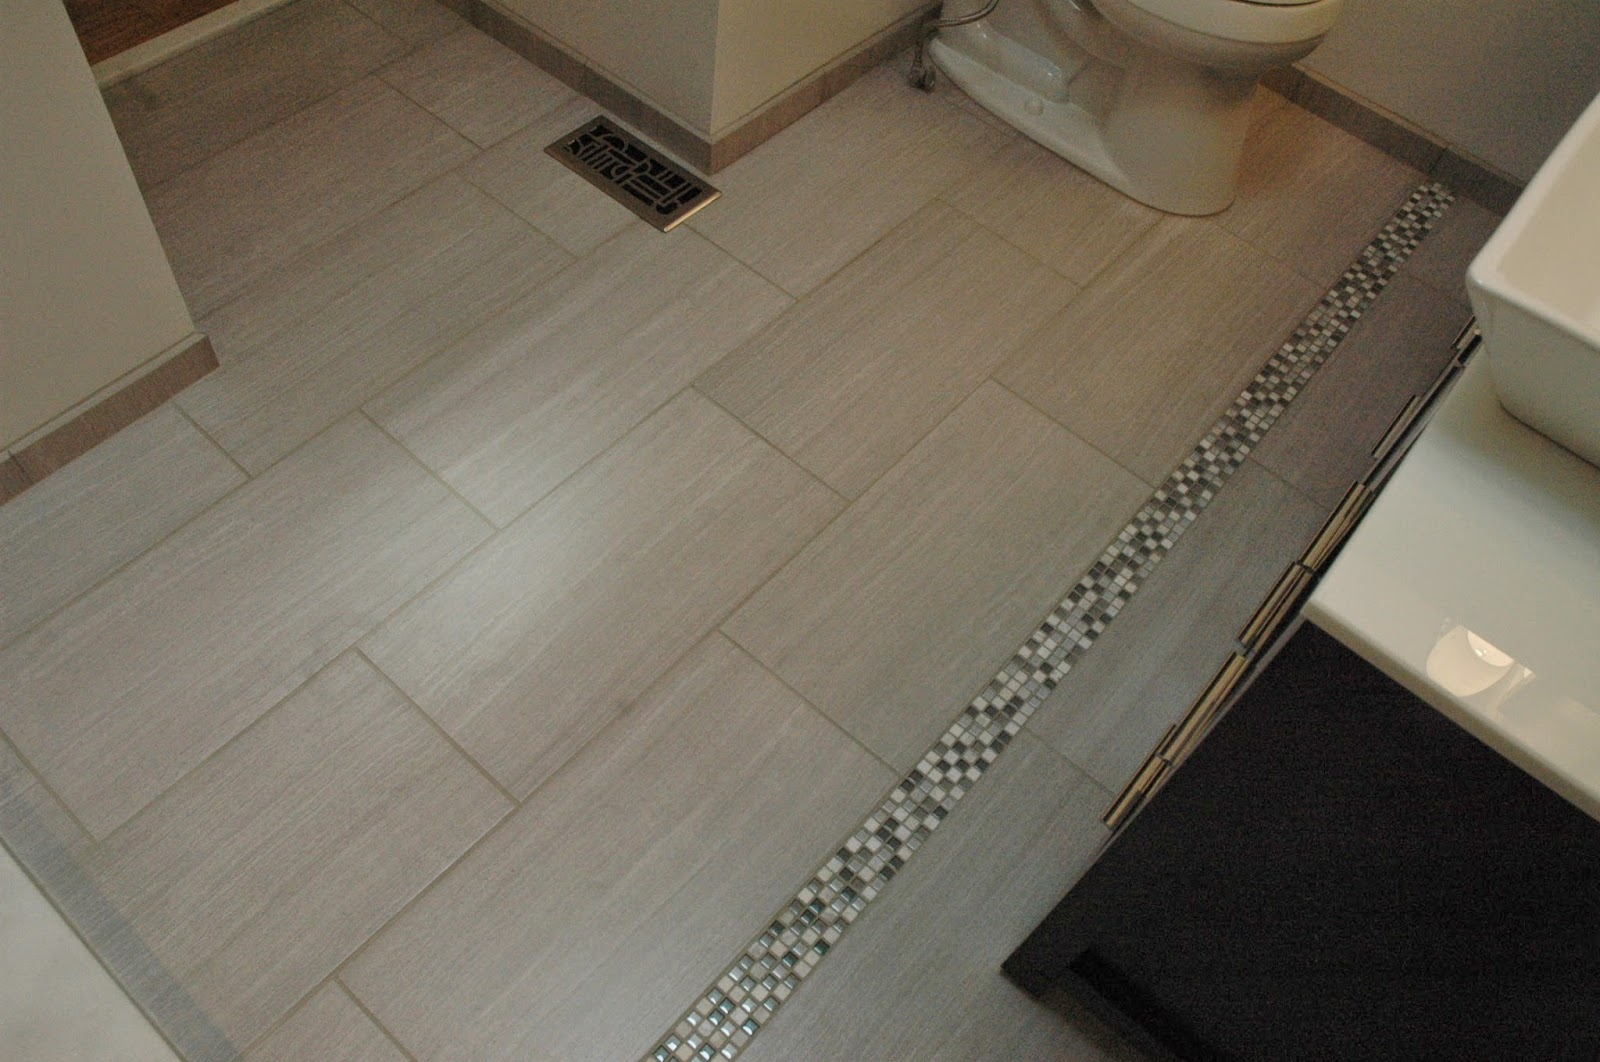 Bathroom Floor Tiles Weight : Great ideas for marble bathroom floor tiles